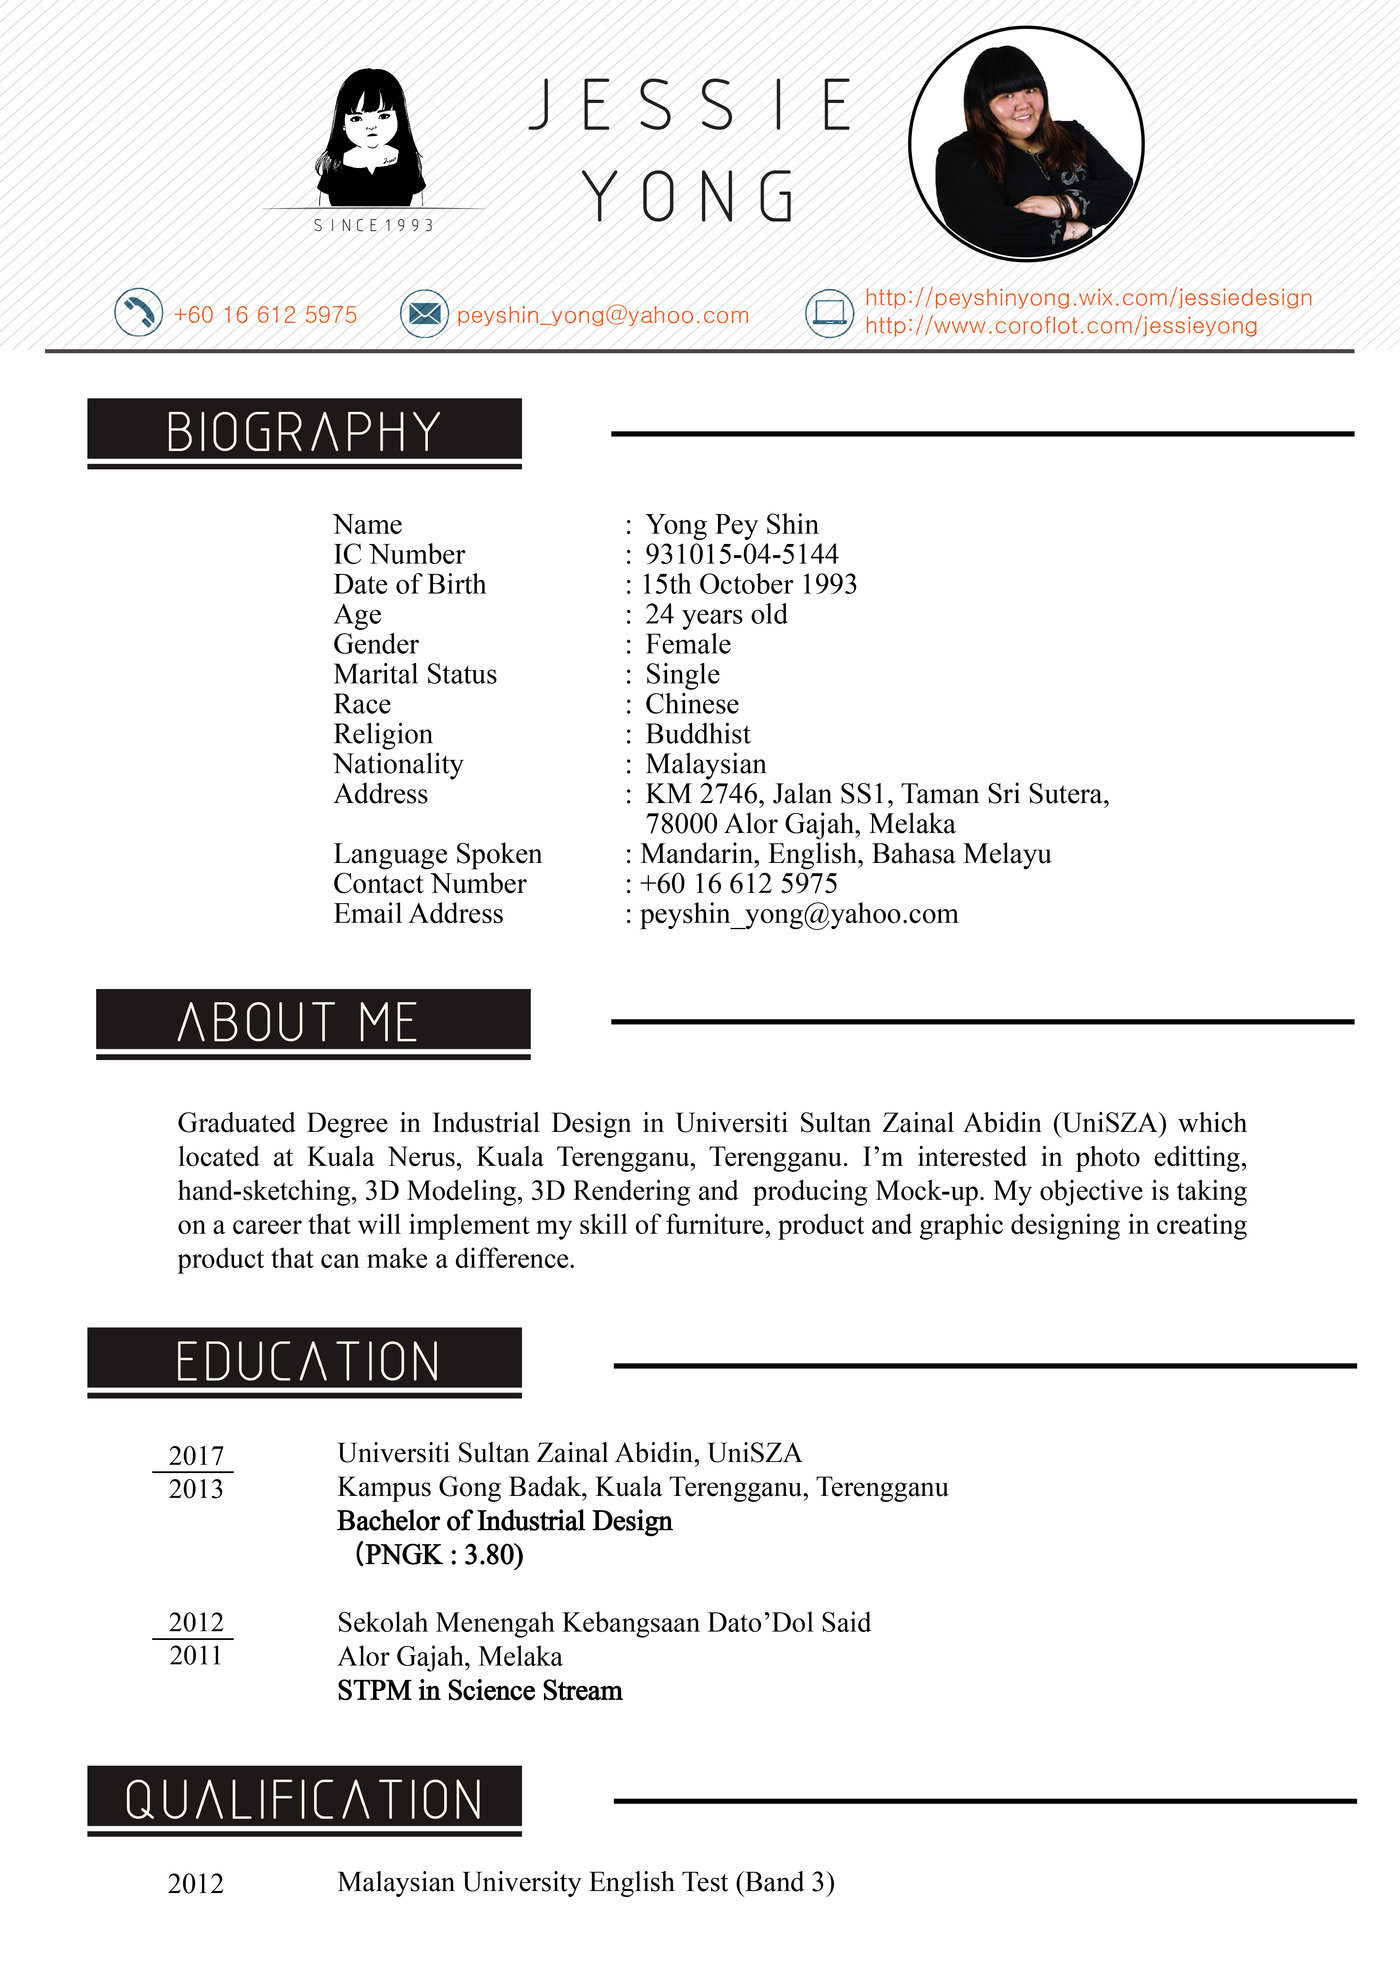 my updated resume by jessie yong at coroflot com